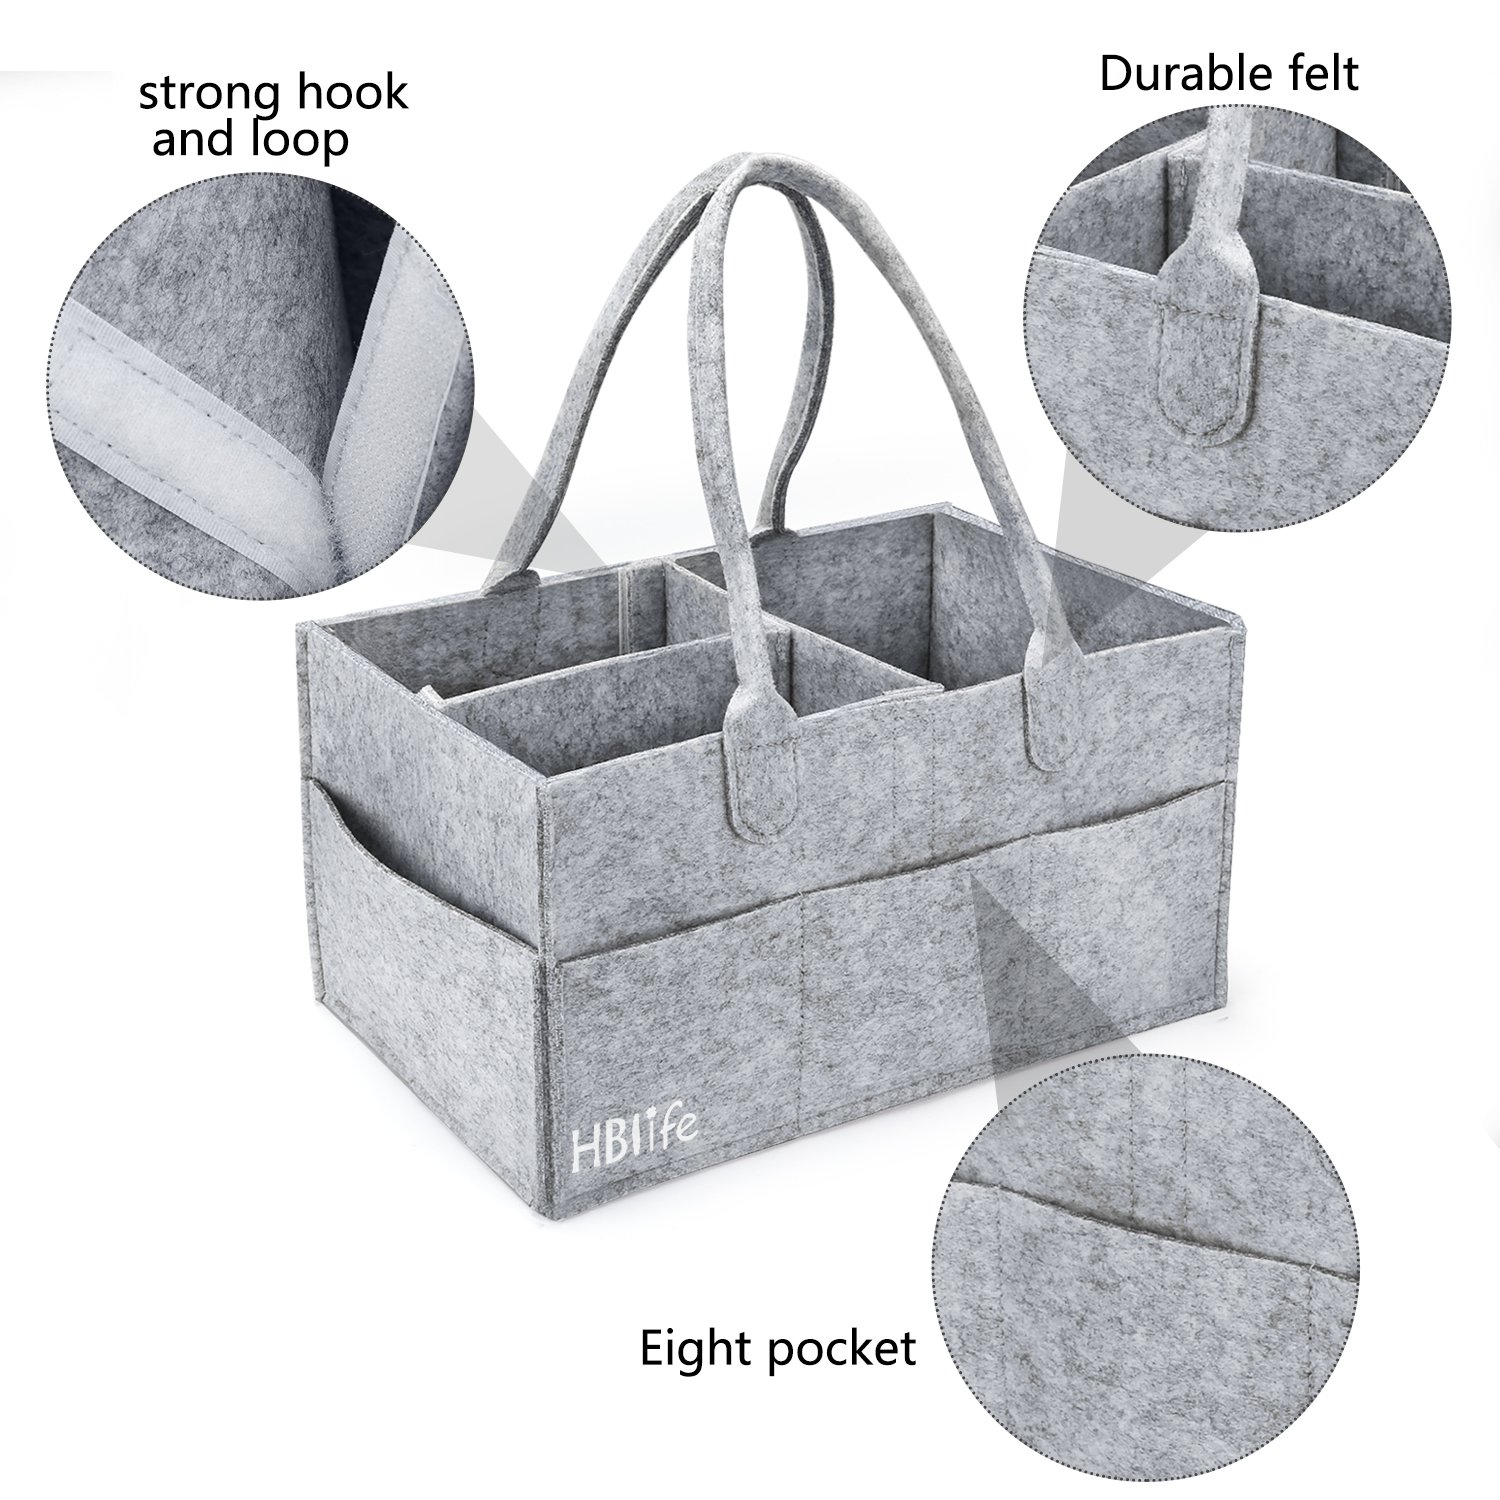 Baby Diaper Caddy Organizer HBlife Nursery Storage Bin Portable Diaper with Changeable Compartments for Newborn Registry Must Haves Baby Wipes Shower Gift Grey